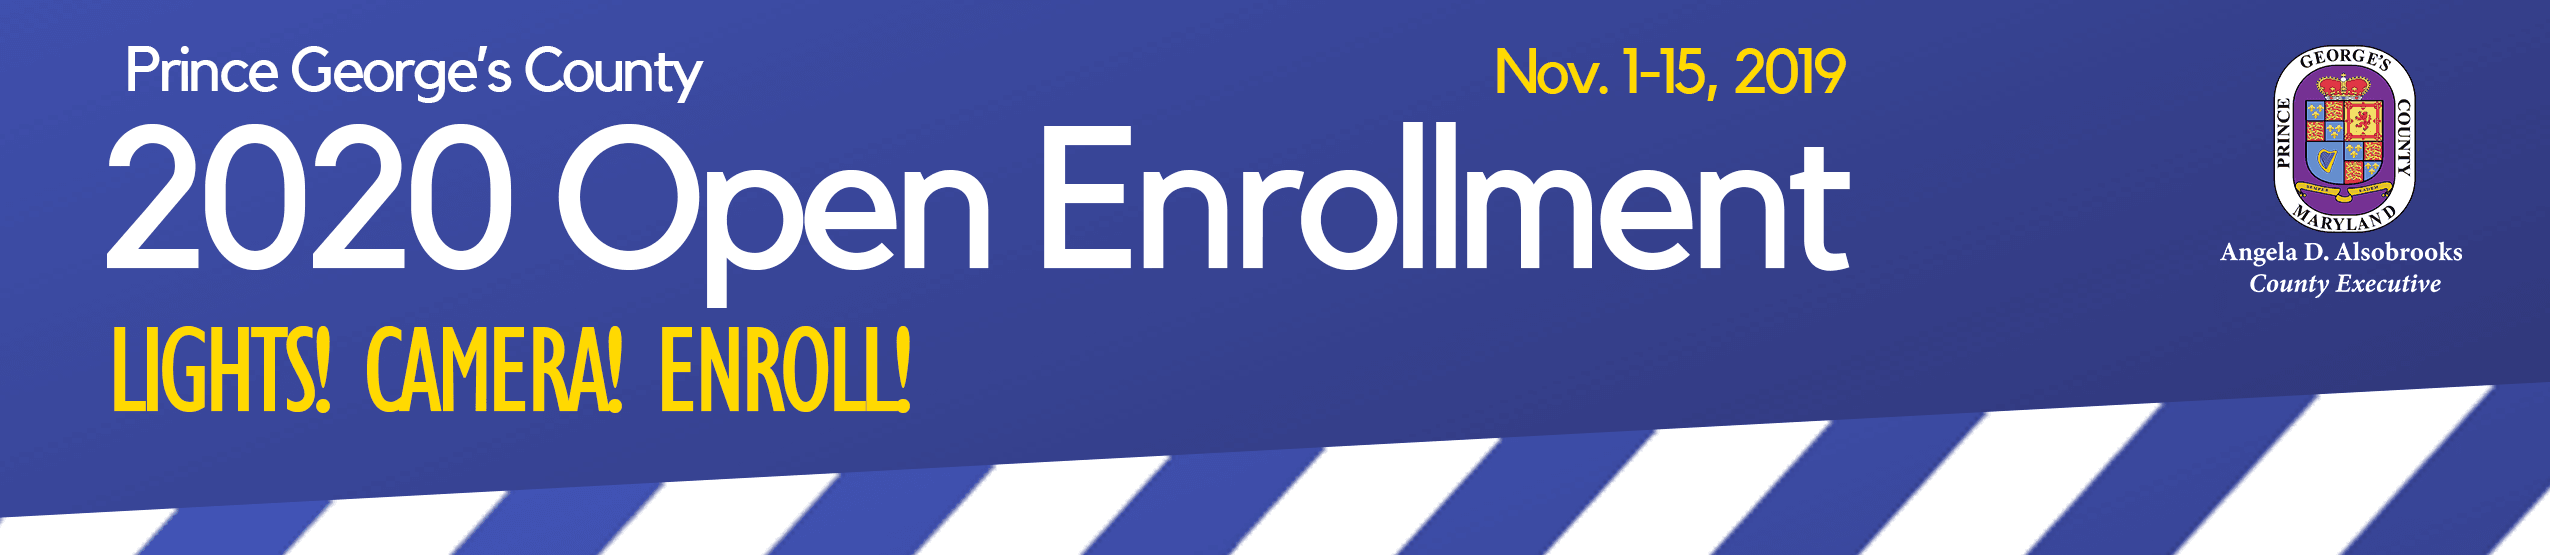 Open Enrollment 2020 Banner